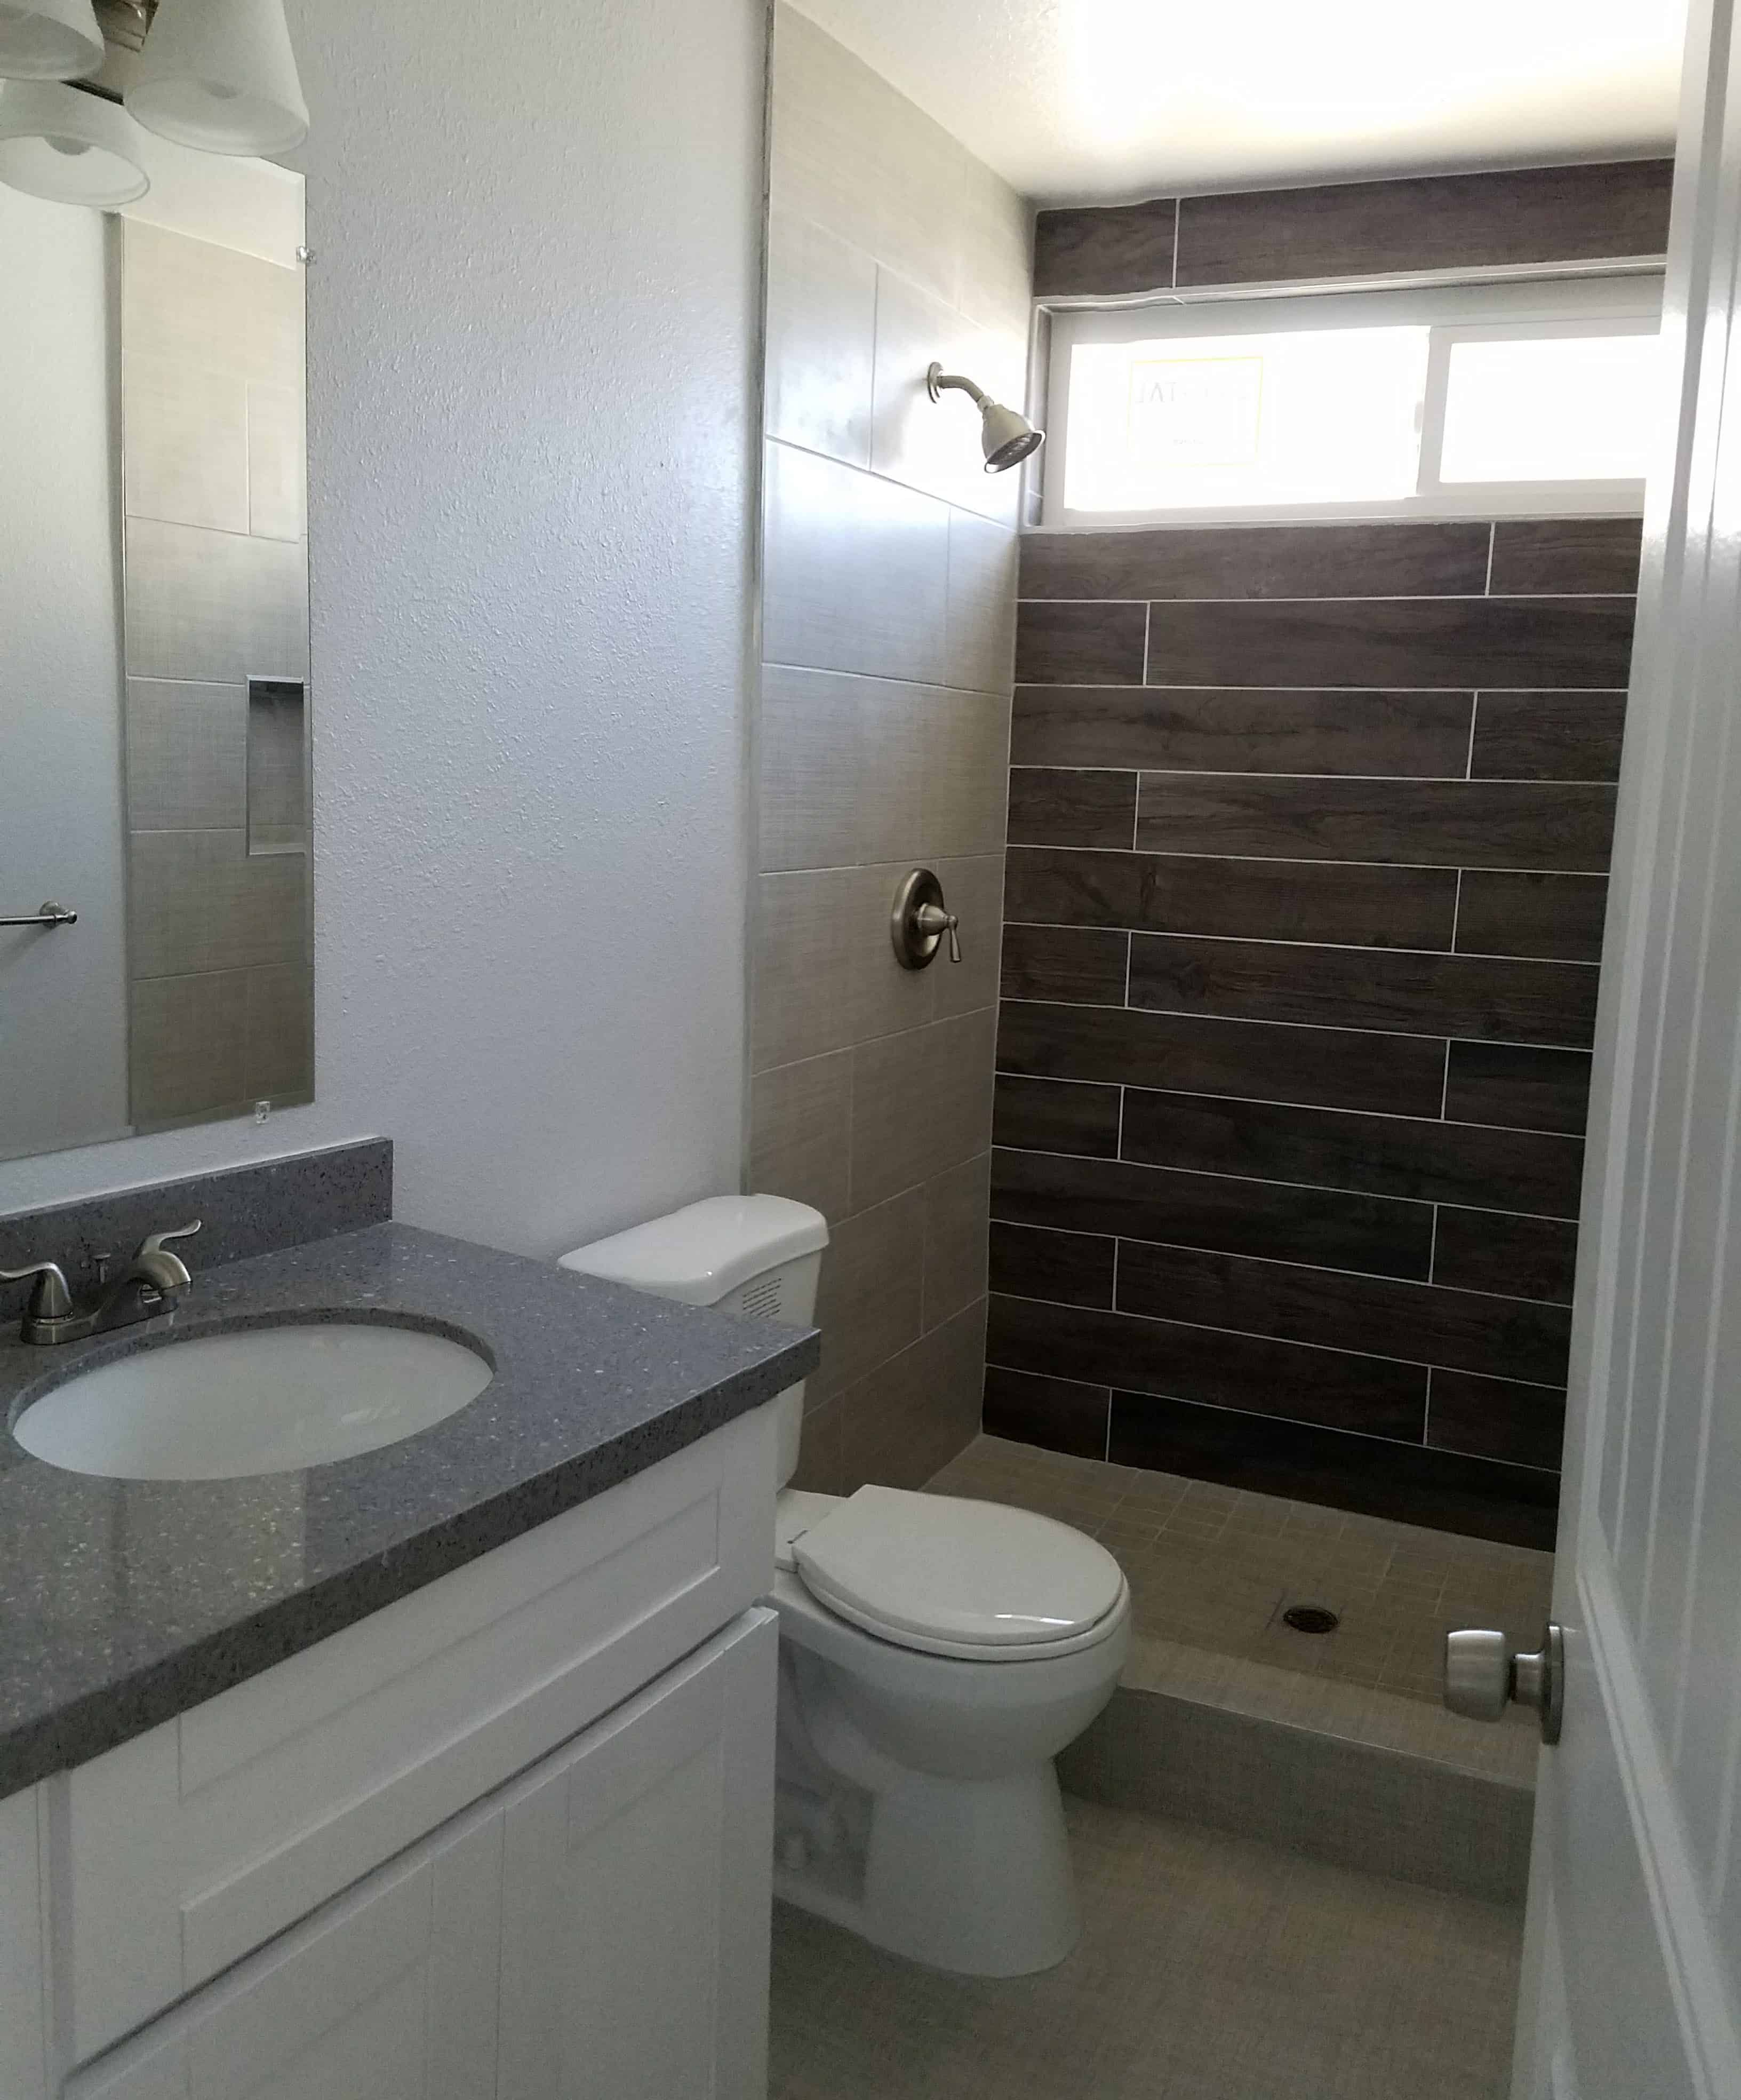 General Contractors San Diego CA   Bathroom Remodeling Company   Designers   Home Remodeling ...